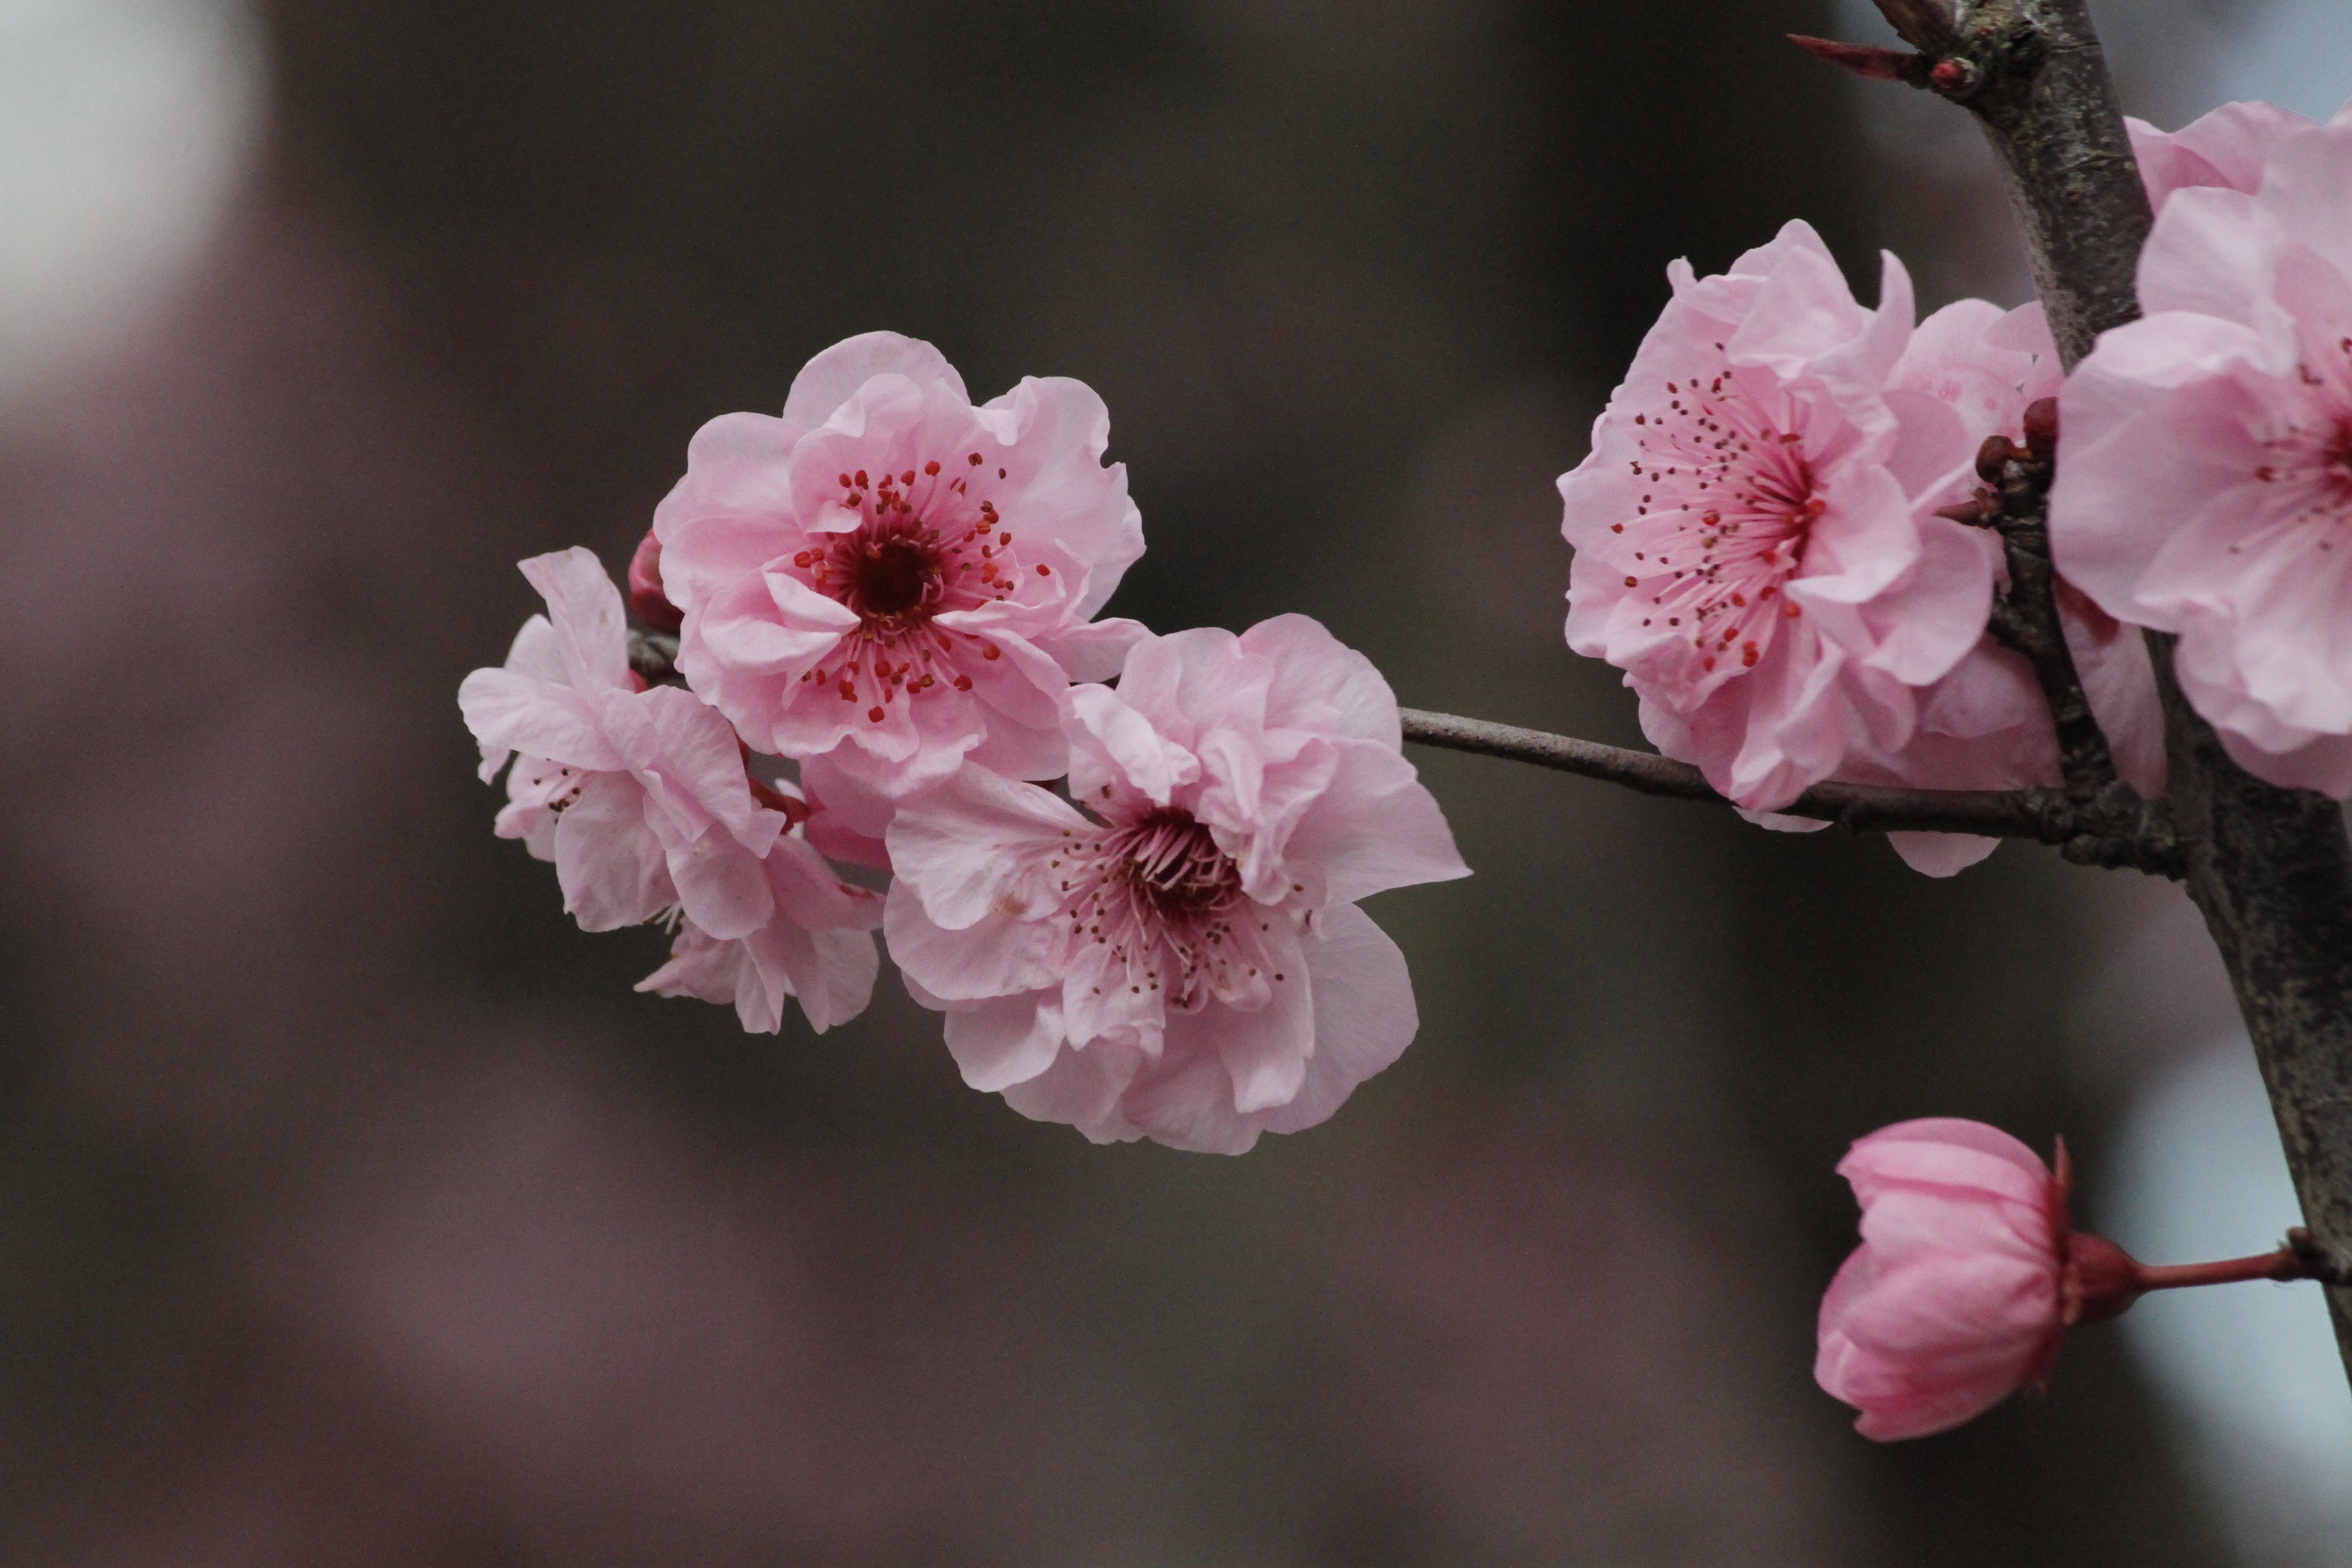 I Love Cherry Blossoms Spring Is The Best Time Of The Year Whats Your Favorite Flower Pinkcos Pinkcosmet Japanese Cherry Tree Pink Cosmetics Pink Blossom